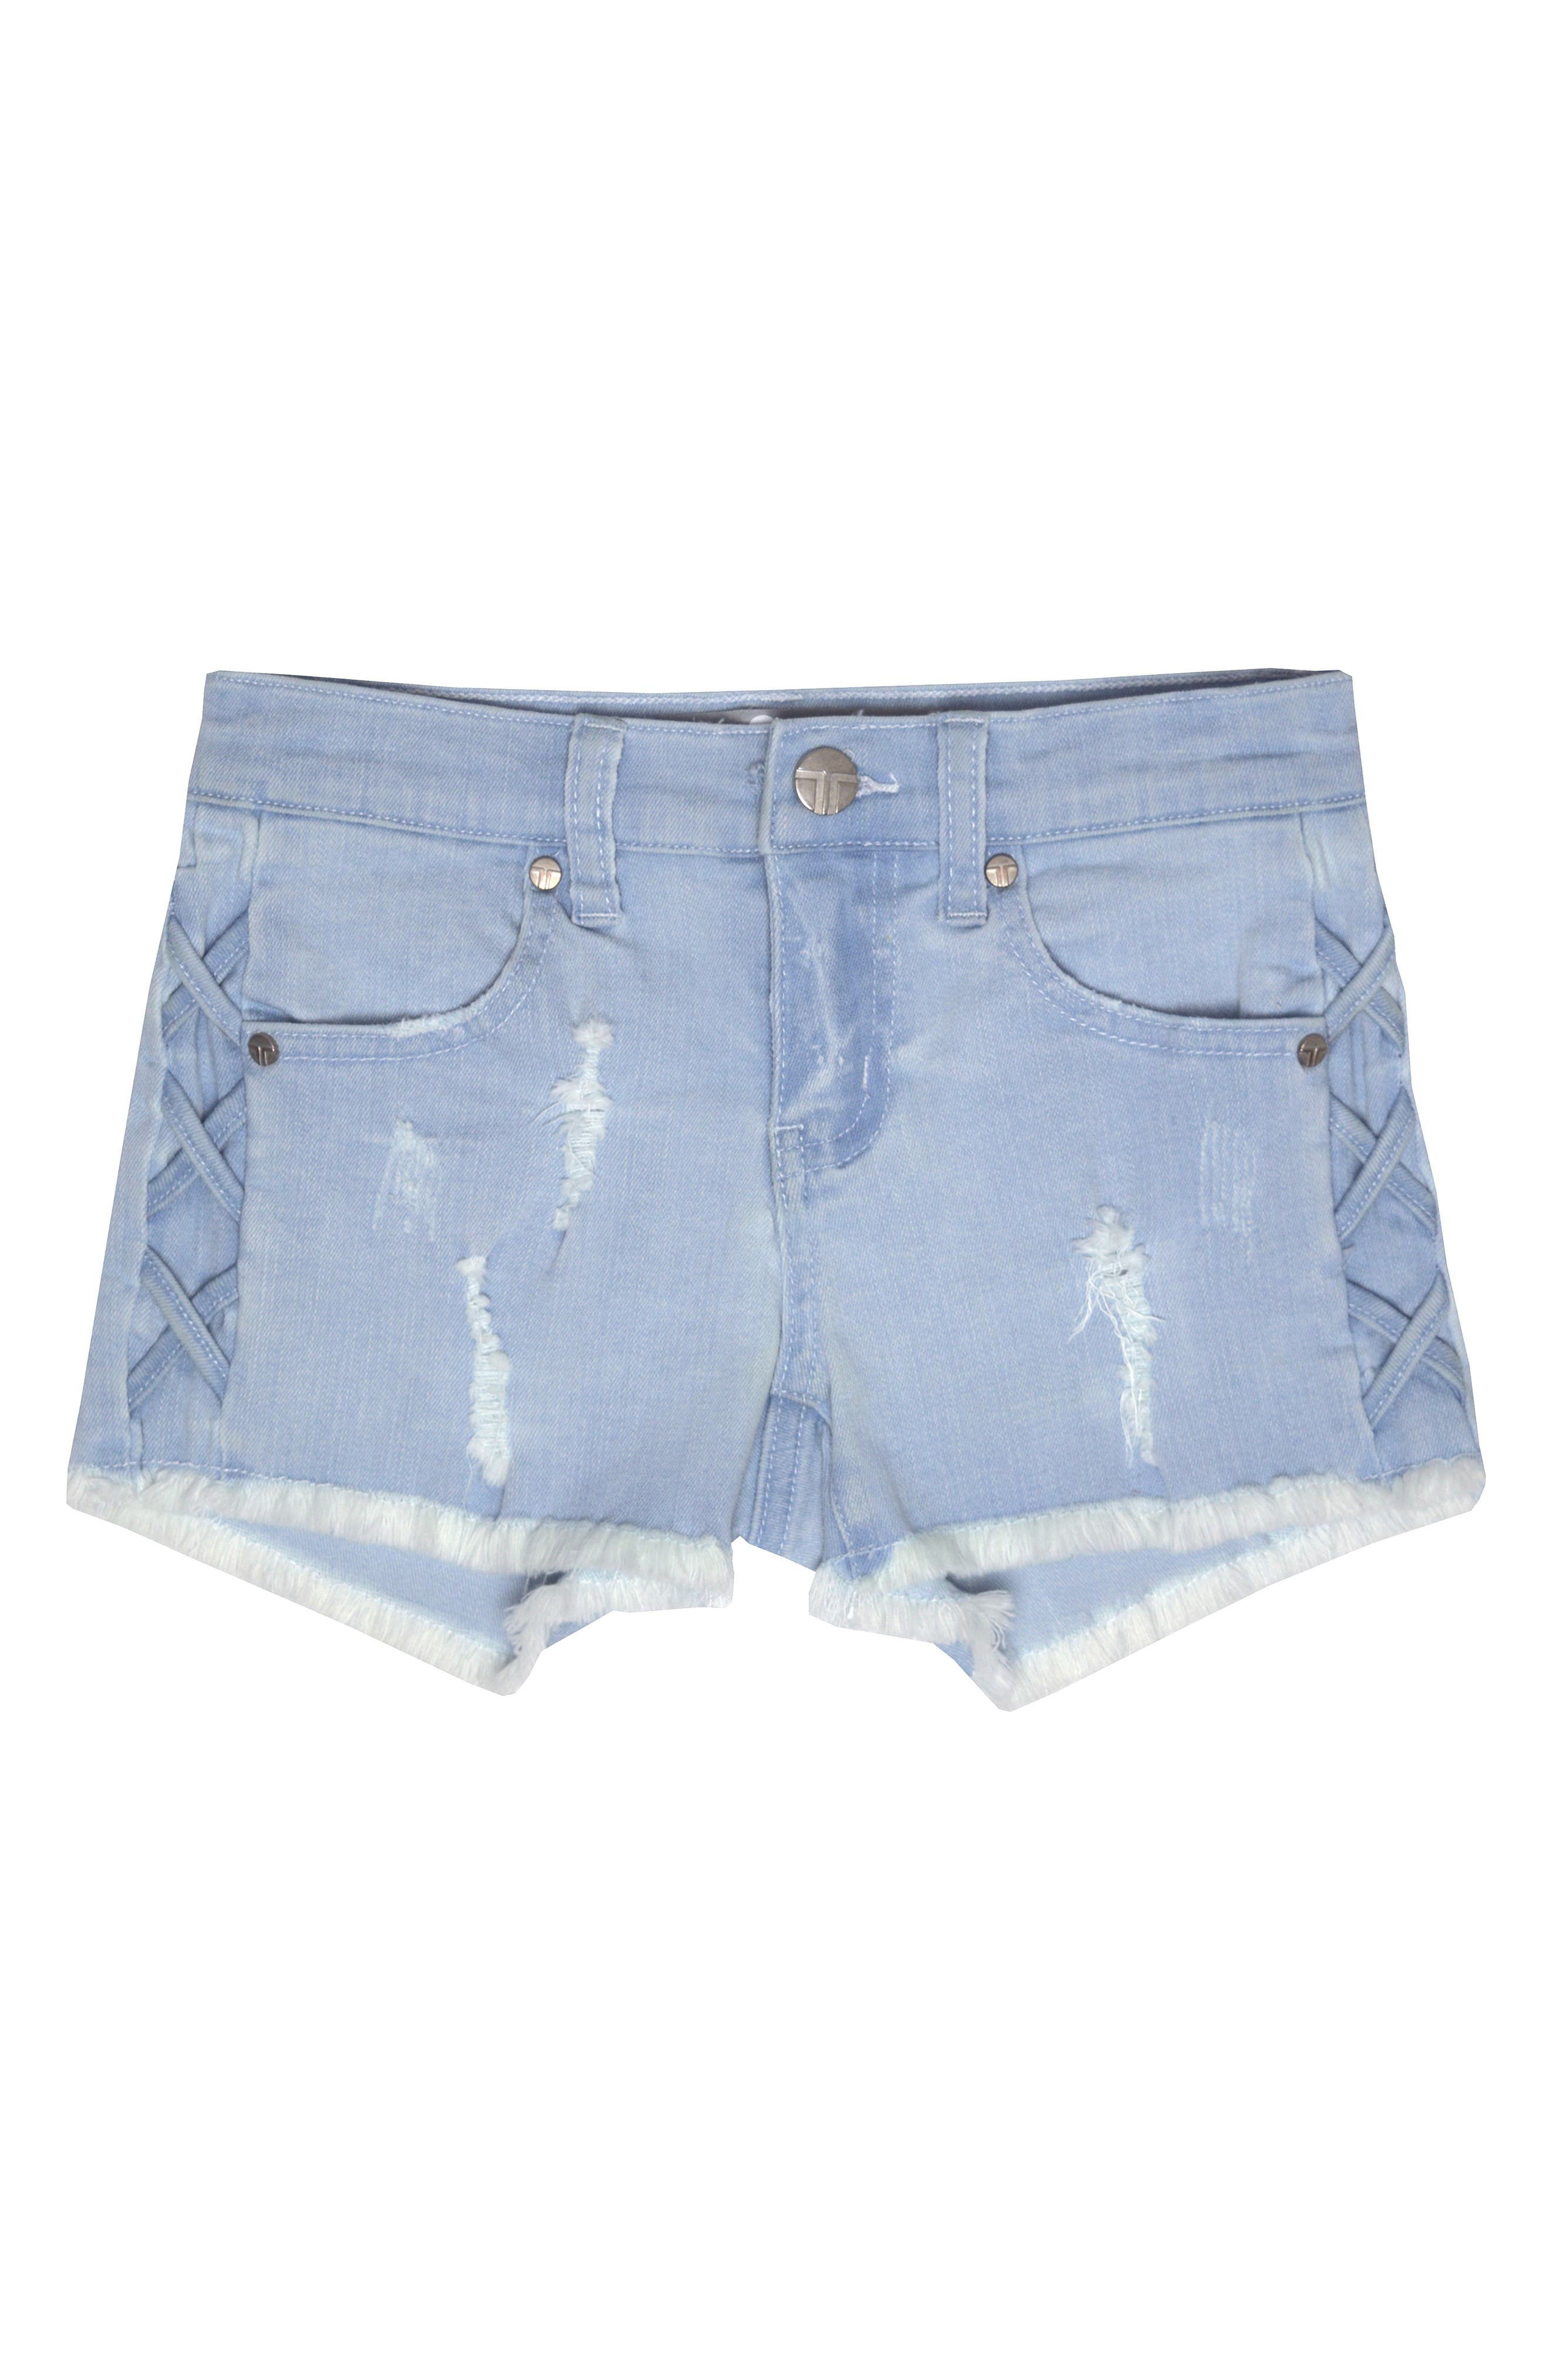 Main Image - Tractr Distressed Cutoff Denim Shorts (Big Girls)